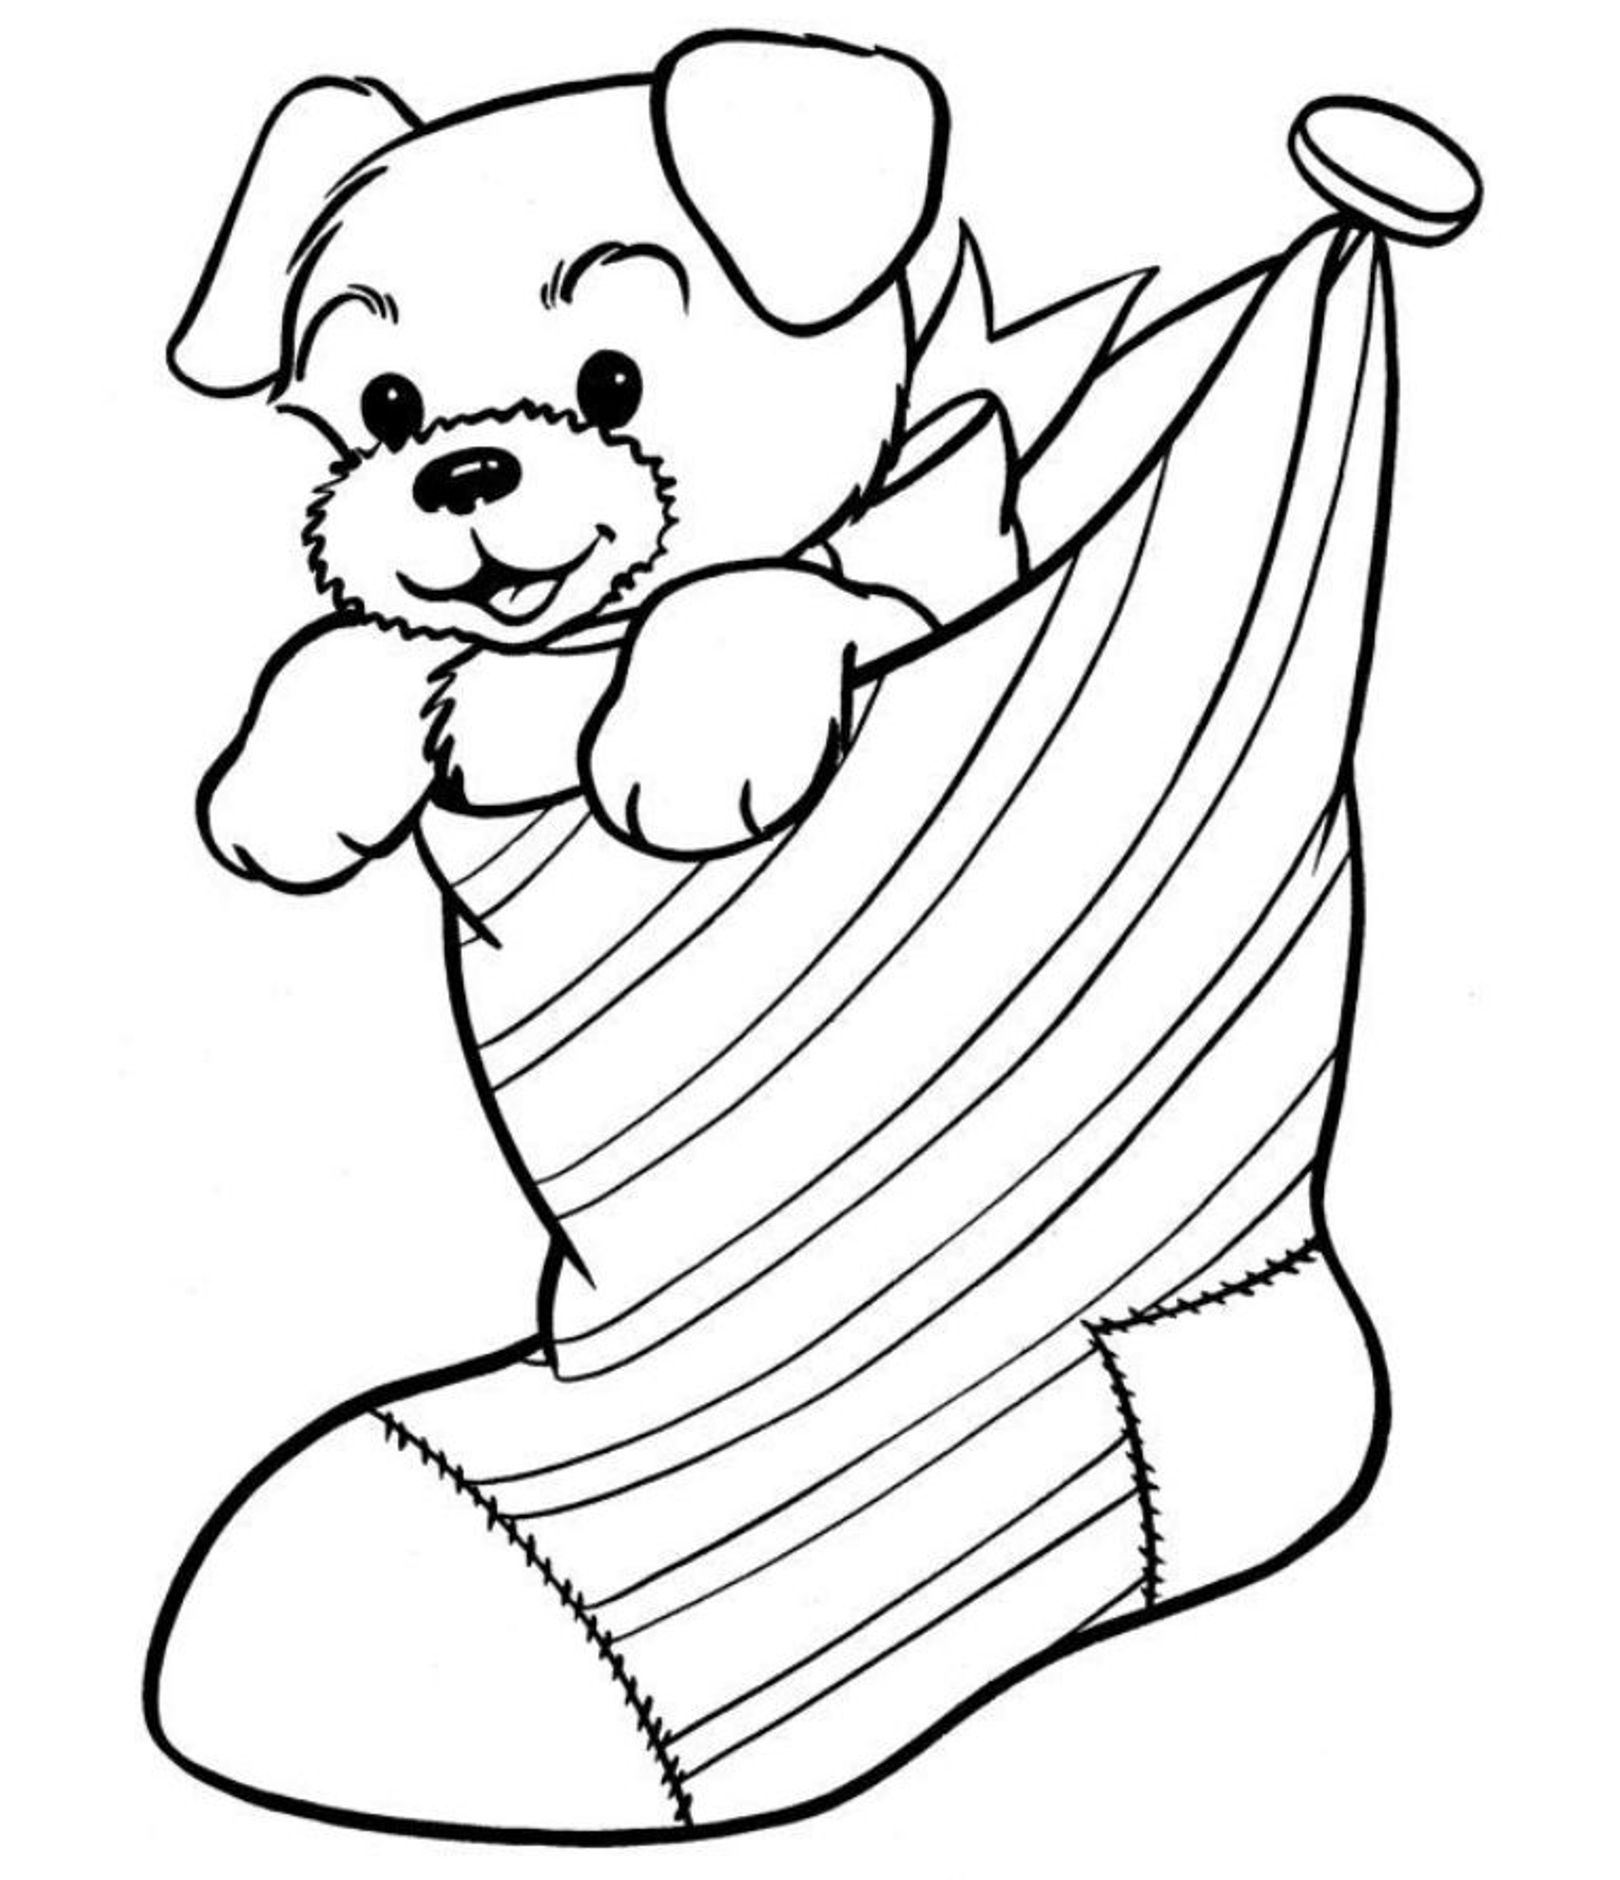 Cute Christmas Coloring Pages Penguin Cute Christmas Coloring Page Santa Christmas Coloring Pages